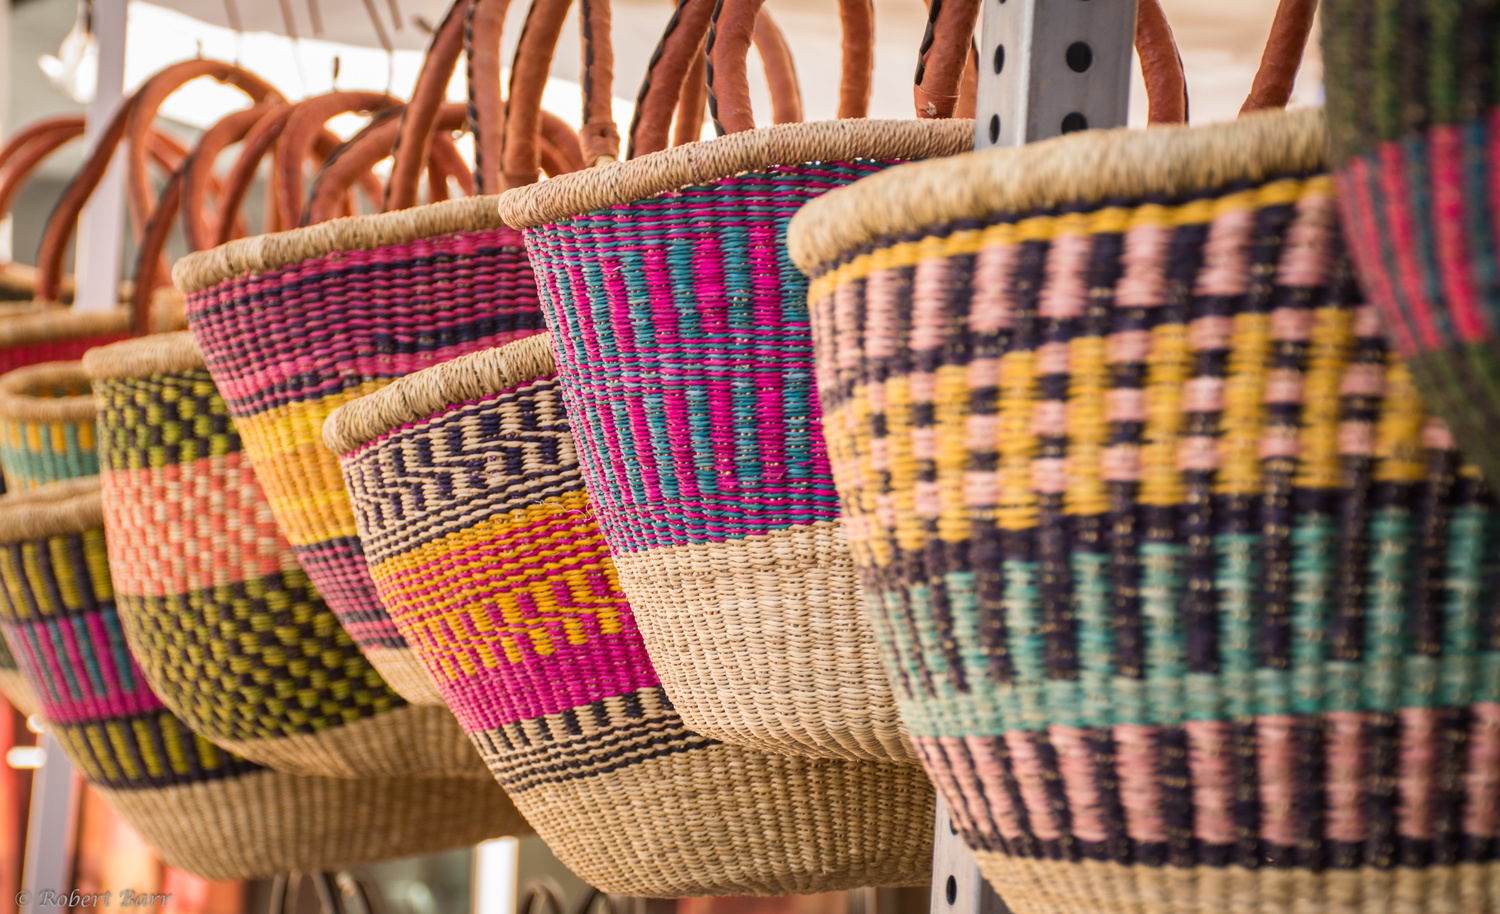 Woven Bags at the  Market by Robert Barr